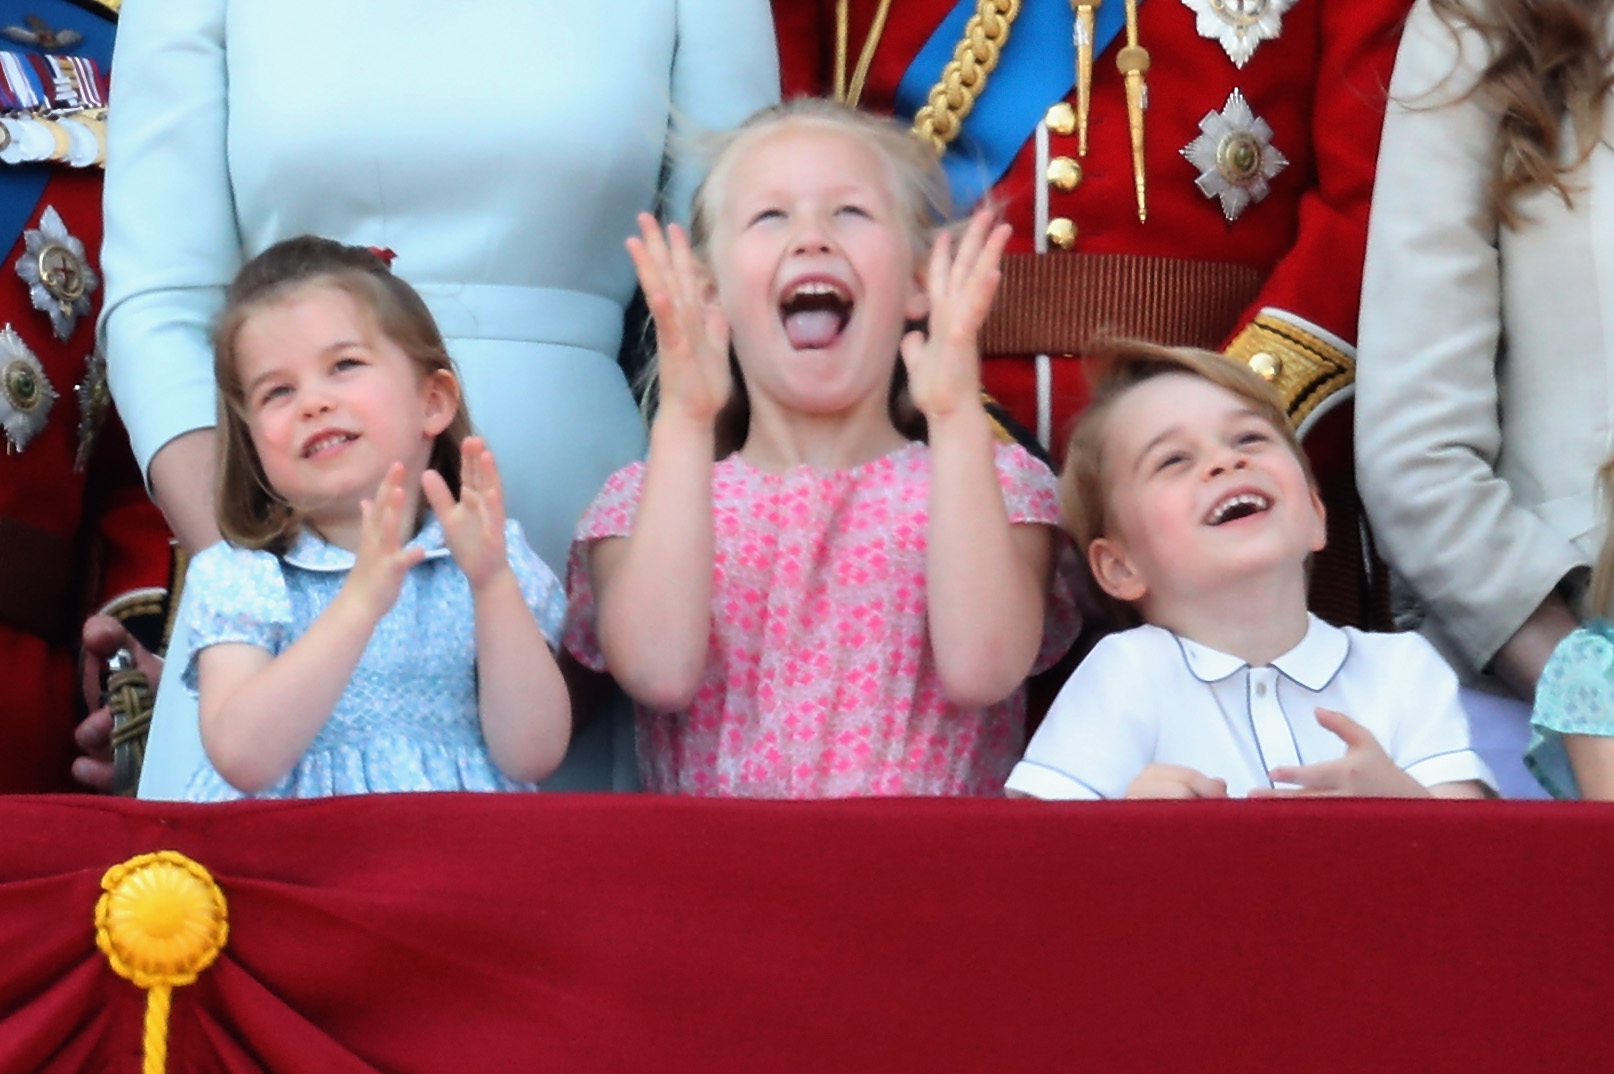 Princess Charlotte of Cambridge, Savannah Phillips, Prince George of Cambridge watch the flypast on the balcony of Buckingham Palace during Trooping The Colour on June 9, 2018 in London